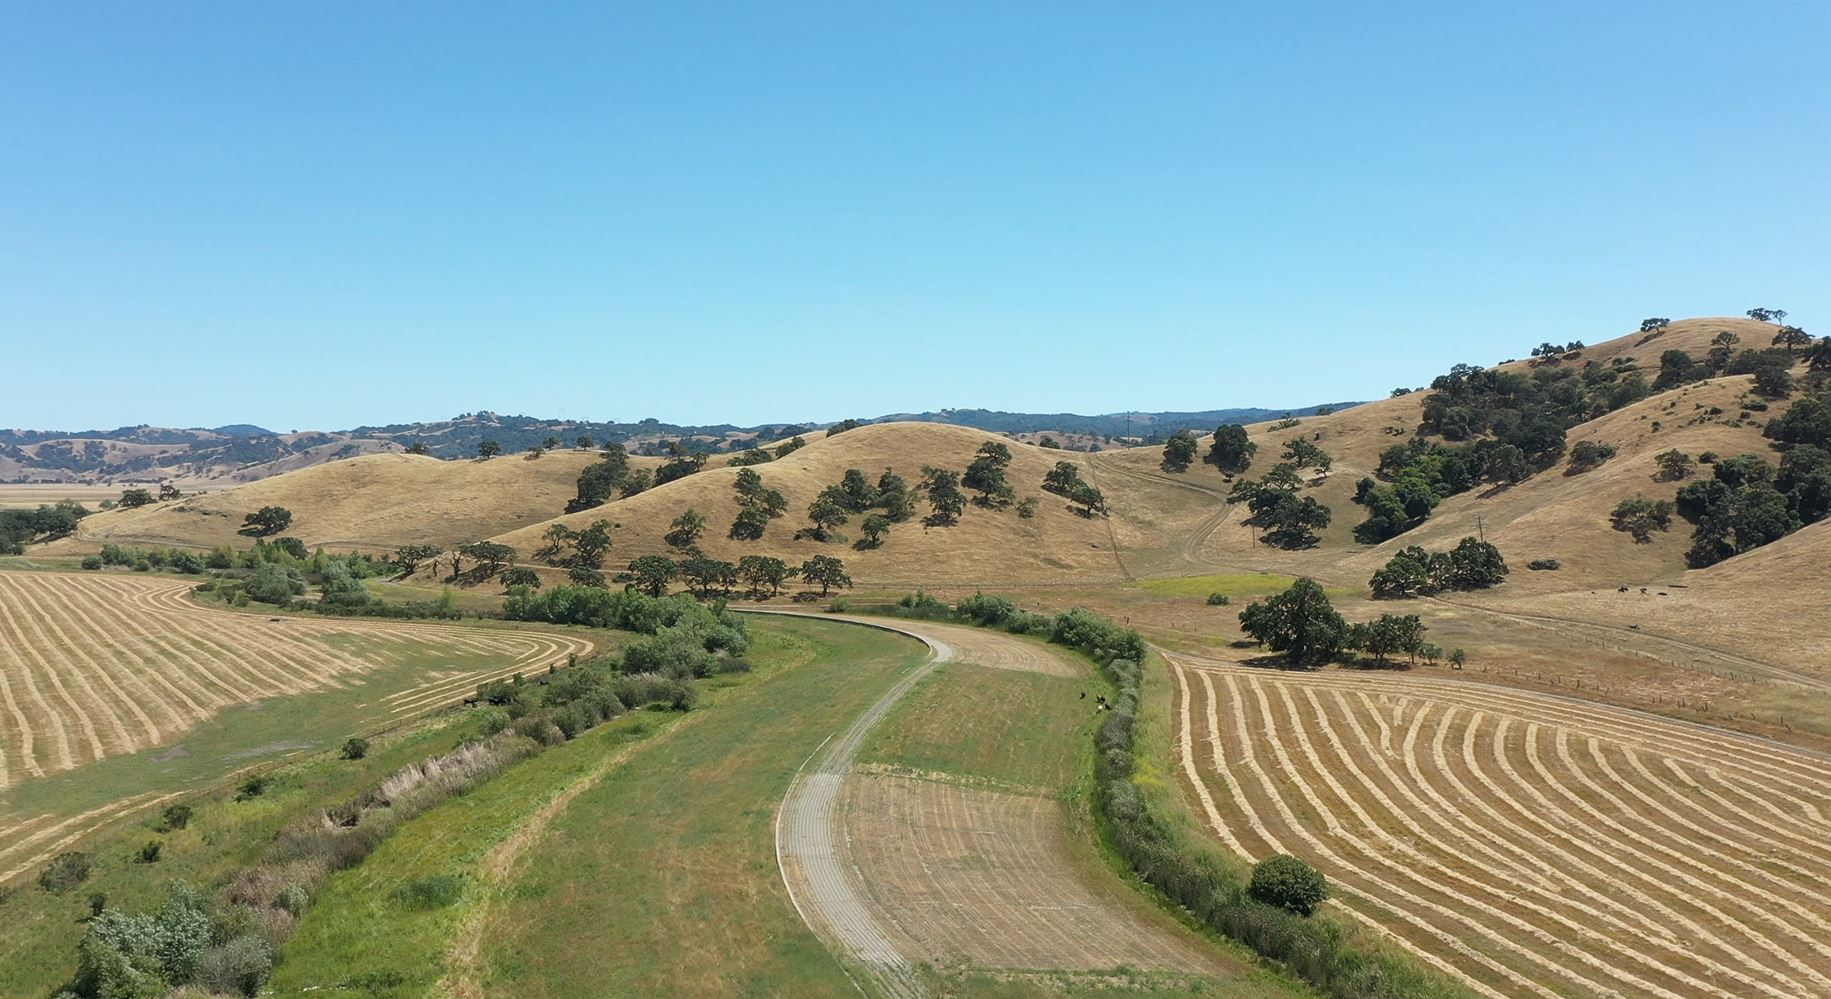 Green and golden hills under blue sky with curving trail